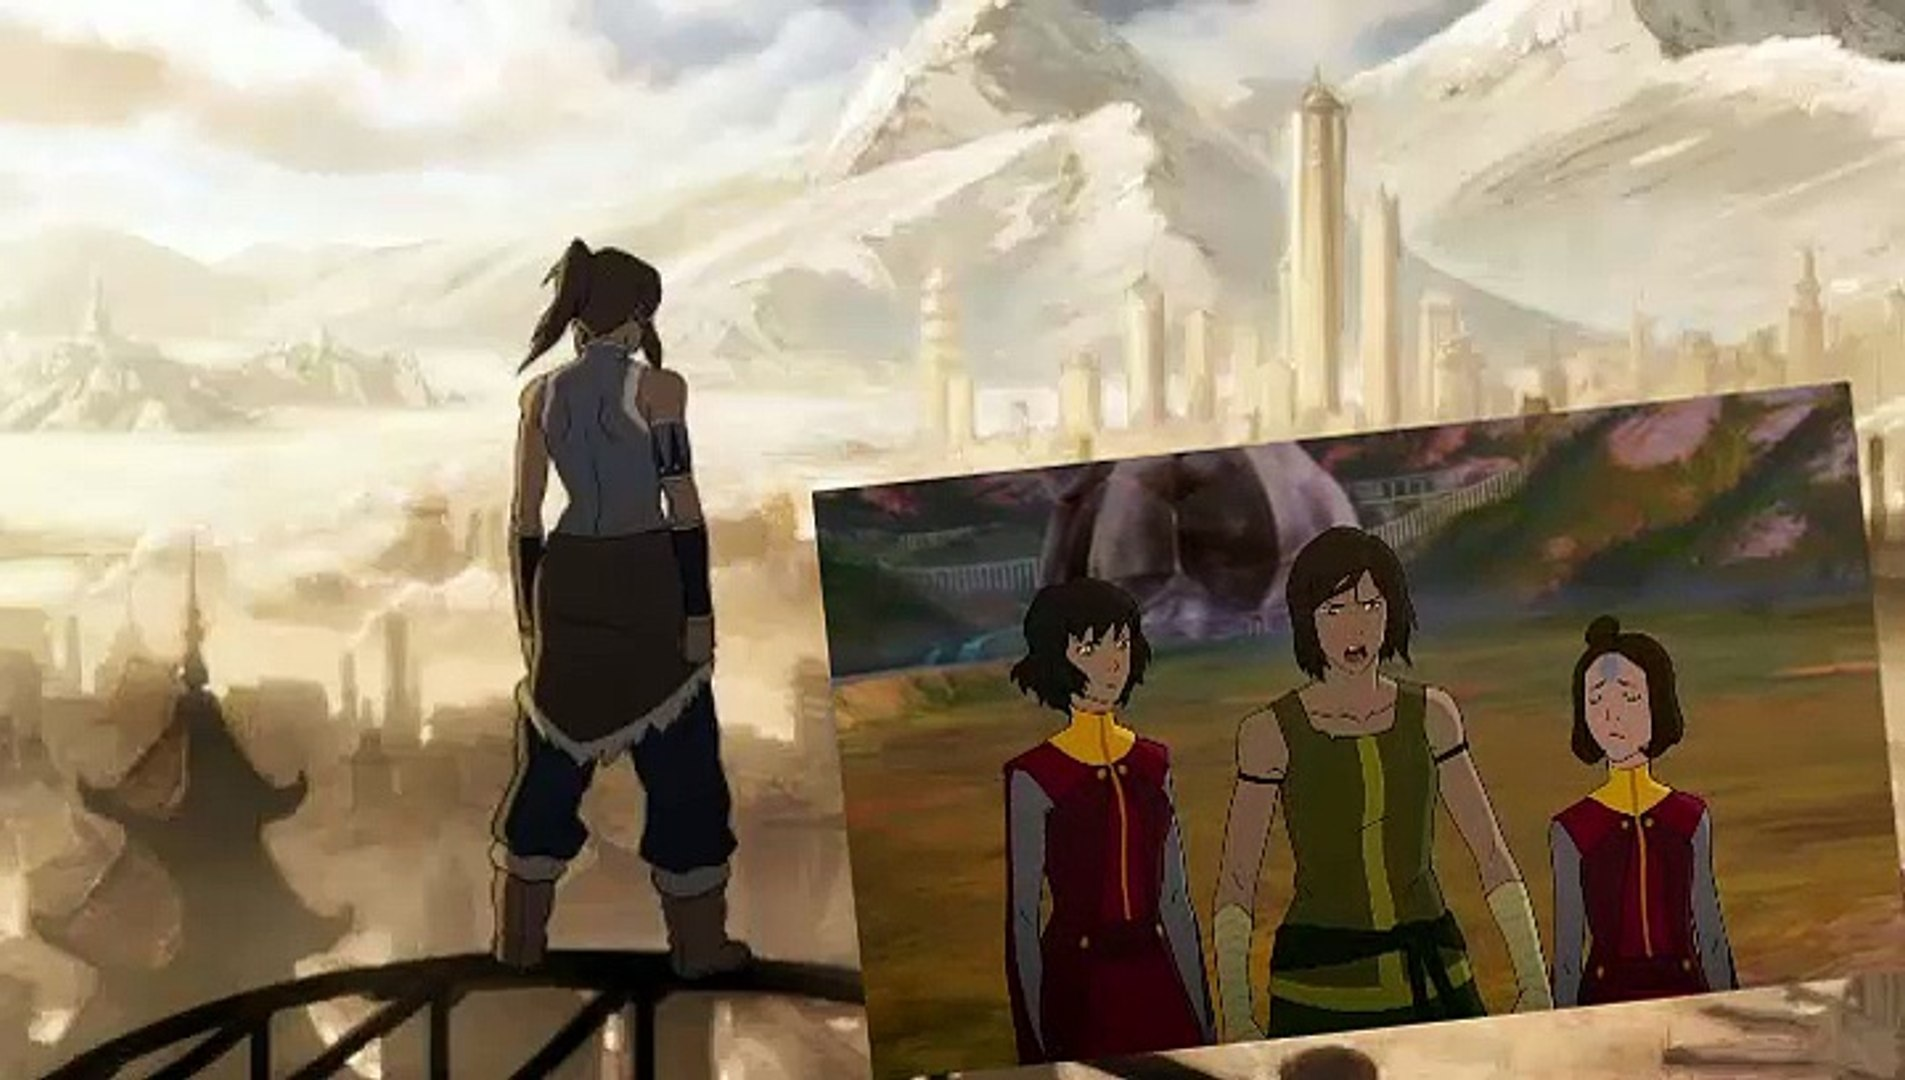 The Legend of Korra Season 4 Episode 6 The Battle of Zaofu-2014-11-30  21-45-26 (4)